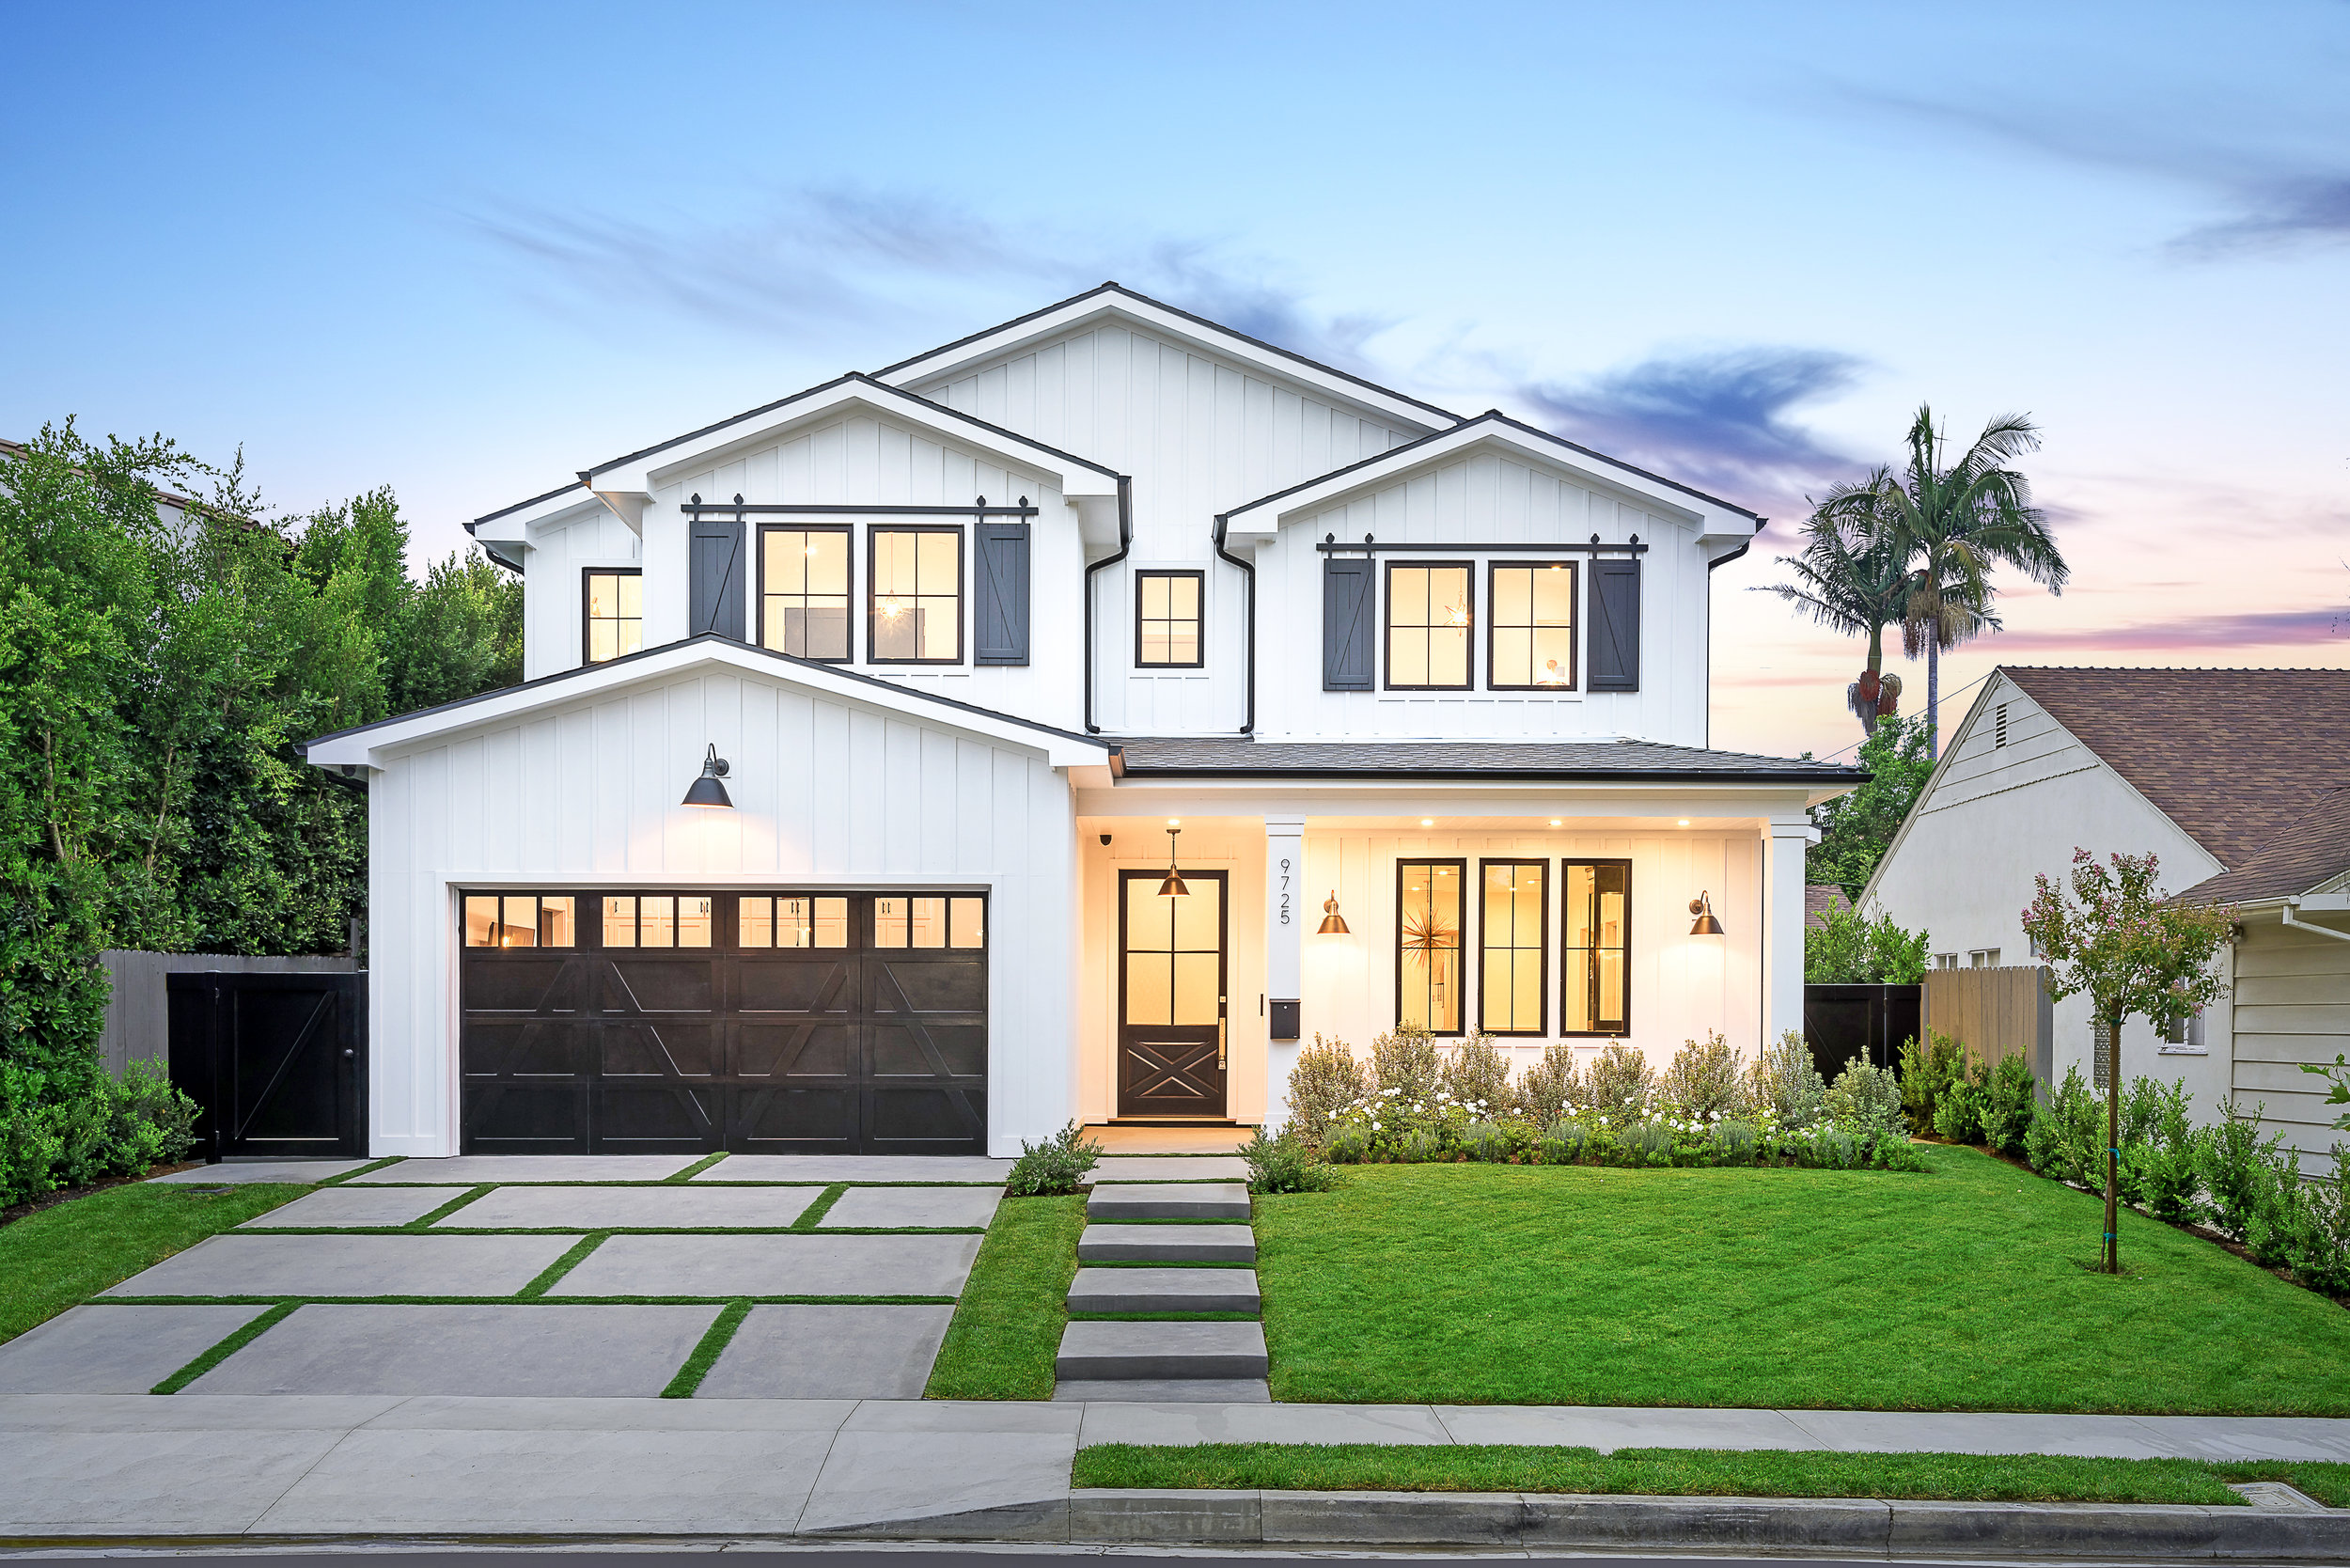 KIRKSIDE AVE | BEVERLYWOOD   A purist east coast traditional in a new contemporary fashion. Presented with a classic white board and batt exterior with exquisite luxury interior finishes throughout.